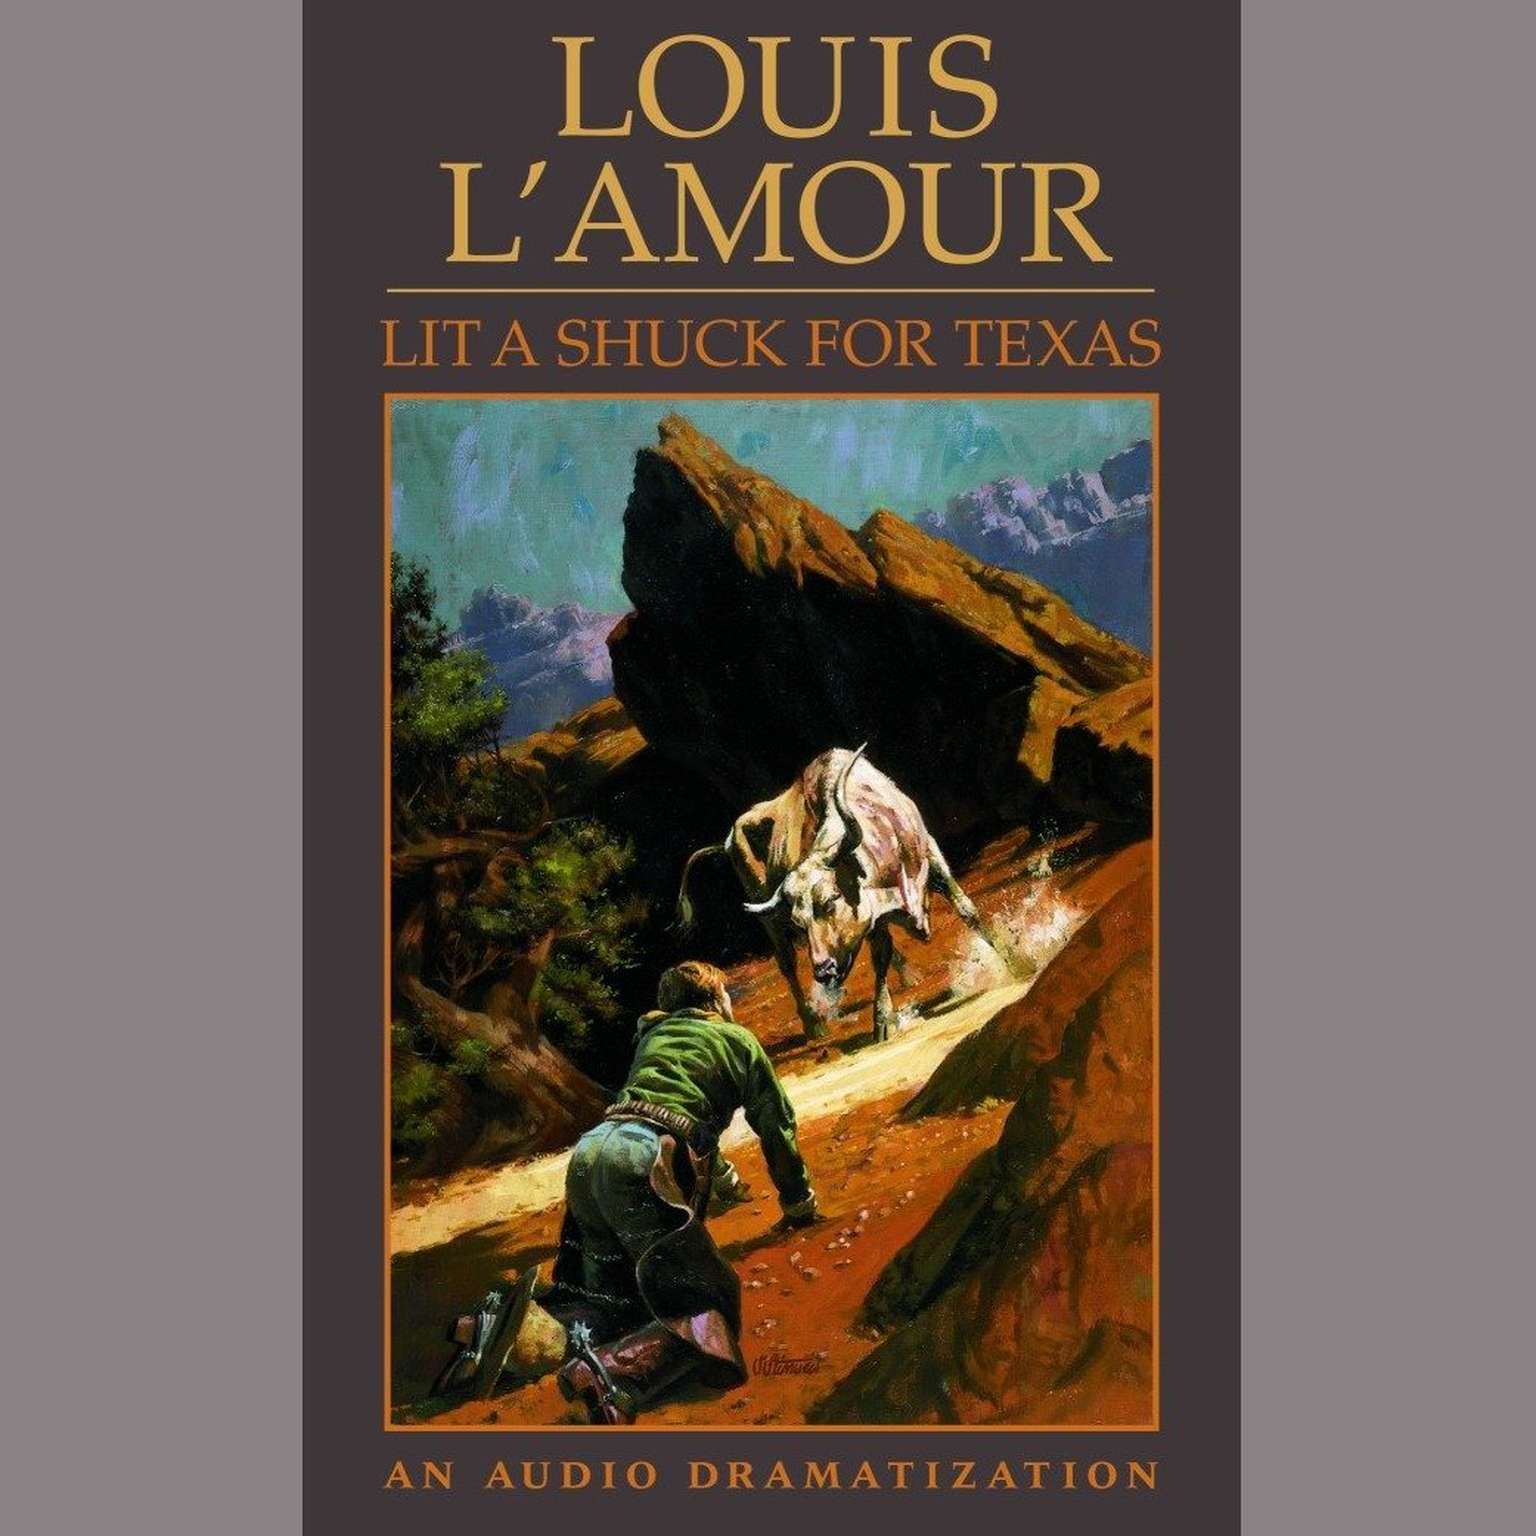 Lit a Shuck for Texas (Abridged) Audiobook, by Louis L'Amour